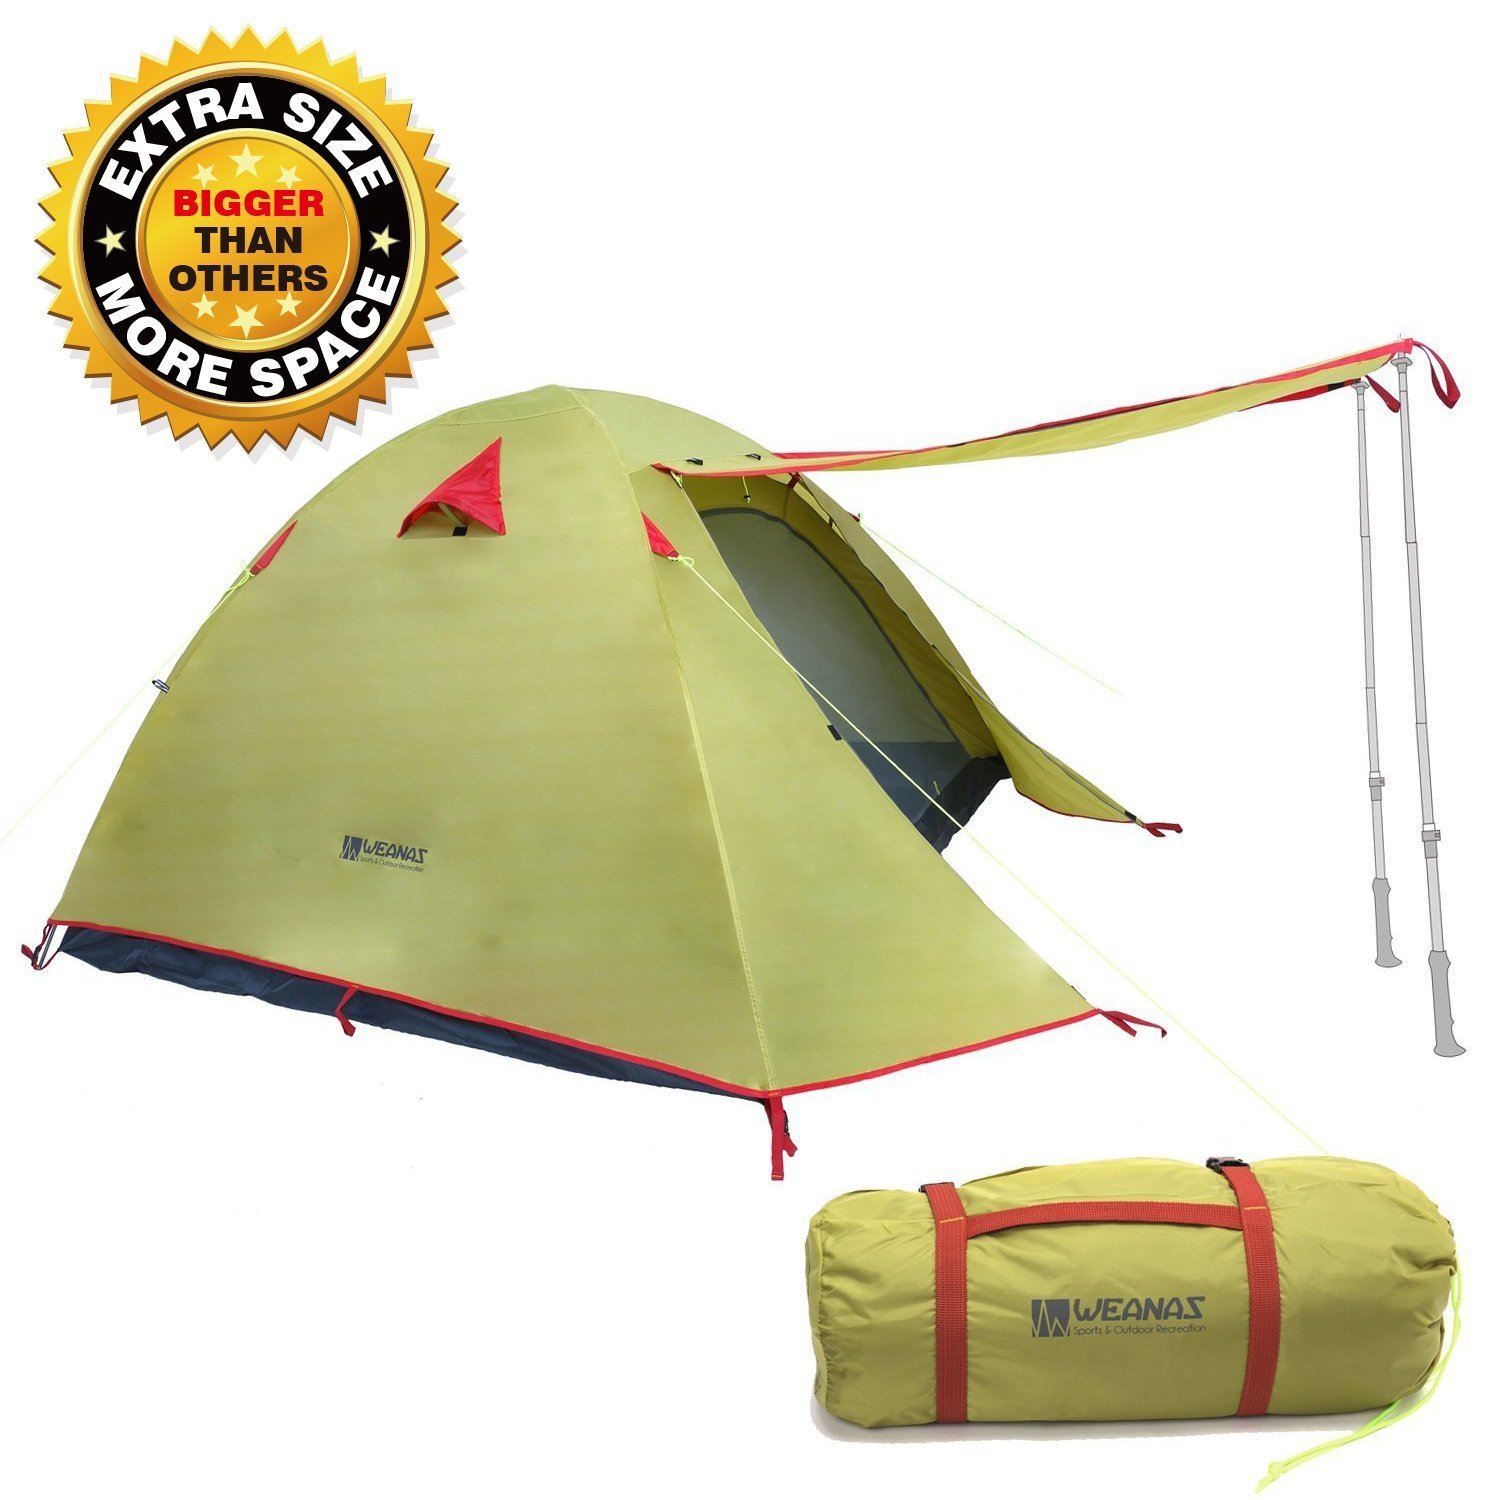 Weanas Professional Backpacking Tent 2 3 4 Person 3 Season Weatherproof Double Layer Large Space Aluminum Rod for Outdoor Family Camping Hunting Hiking Adventure Travel (Green, 2-3 Person) by Weanas